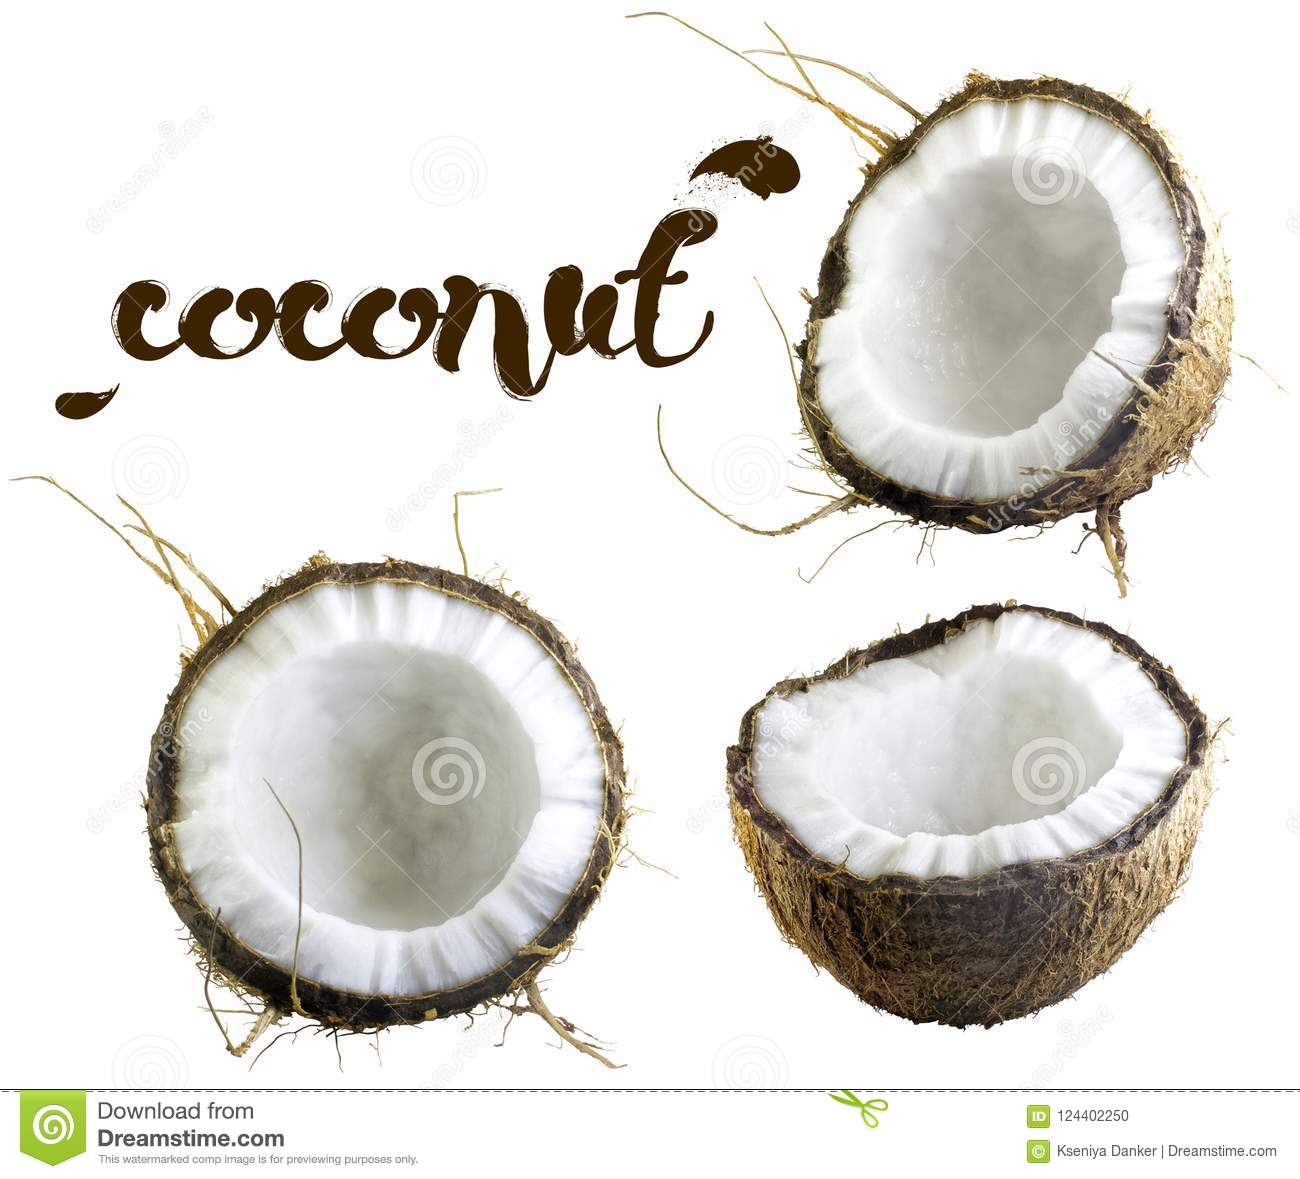 Halves of coconut on a white background